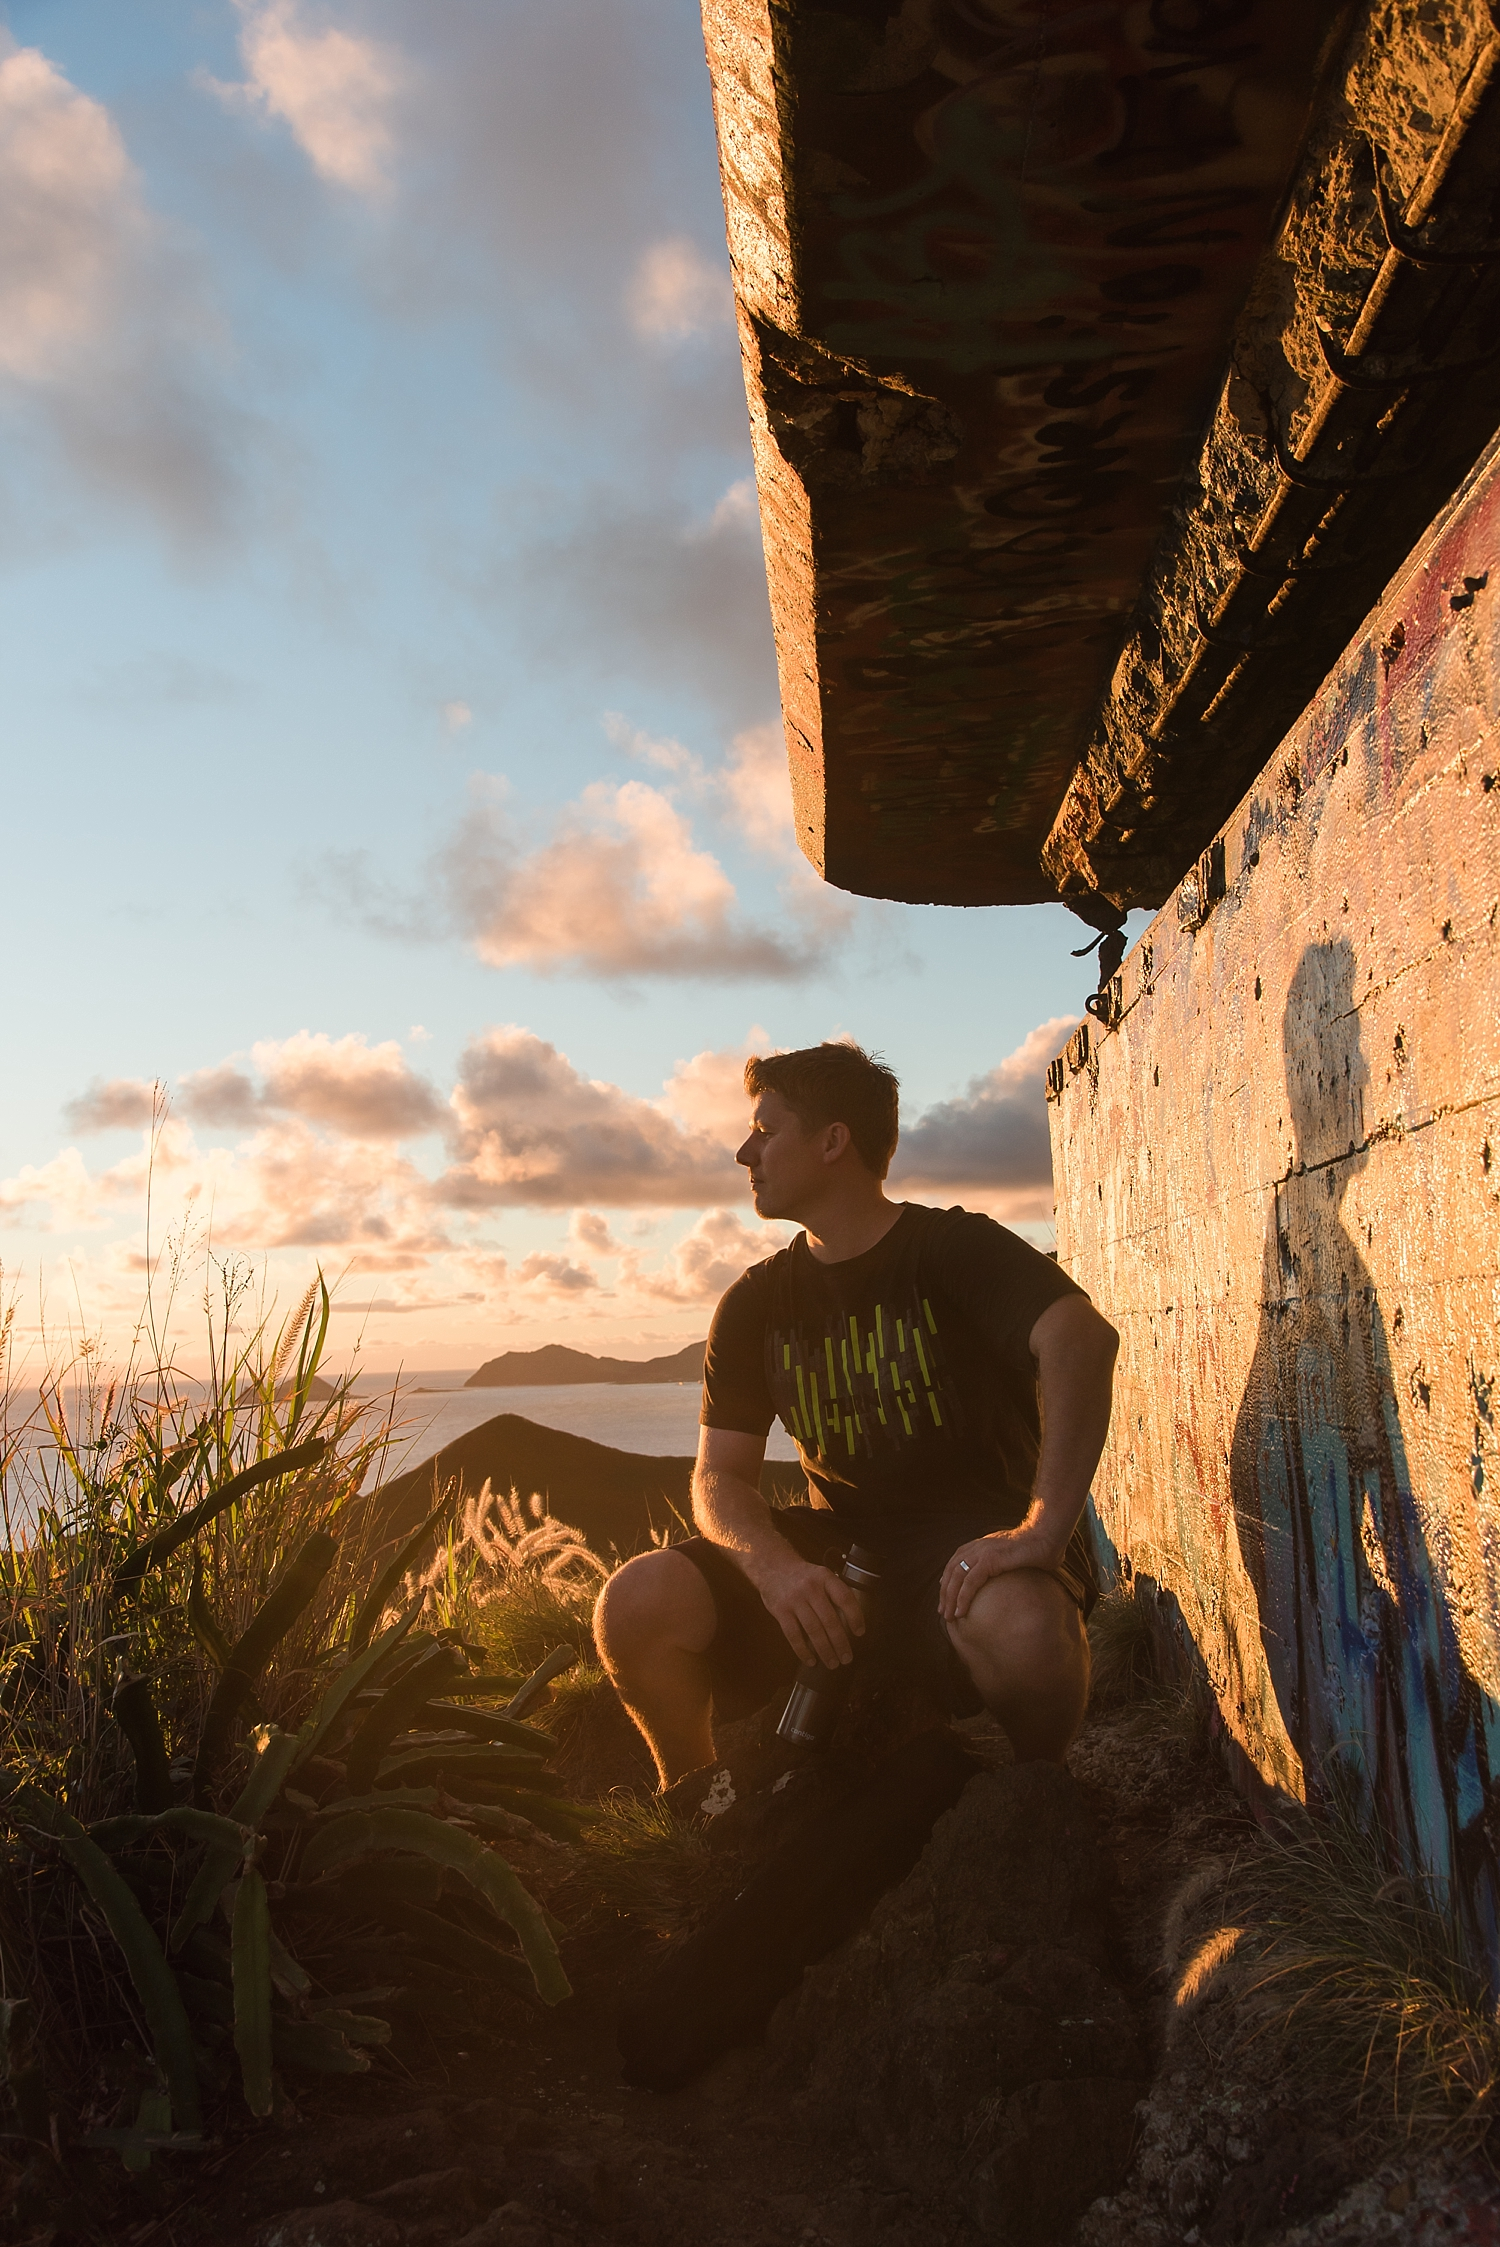 Kevin enjoying the view from the first pillbox just as the sun was starting to rise on this beautiful morning. -